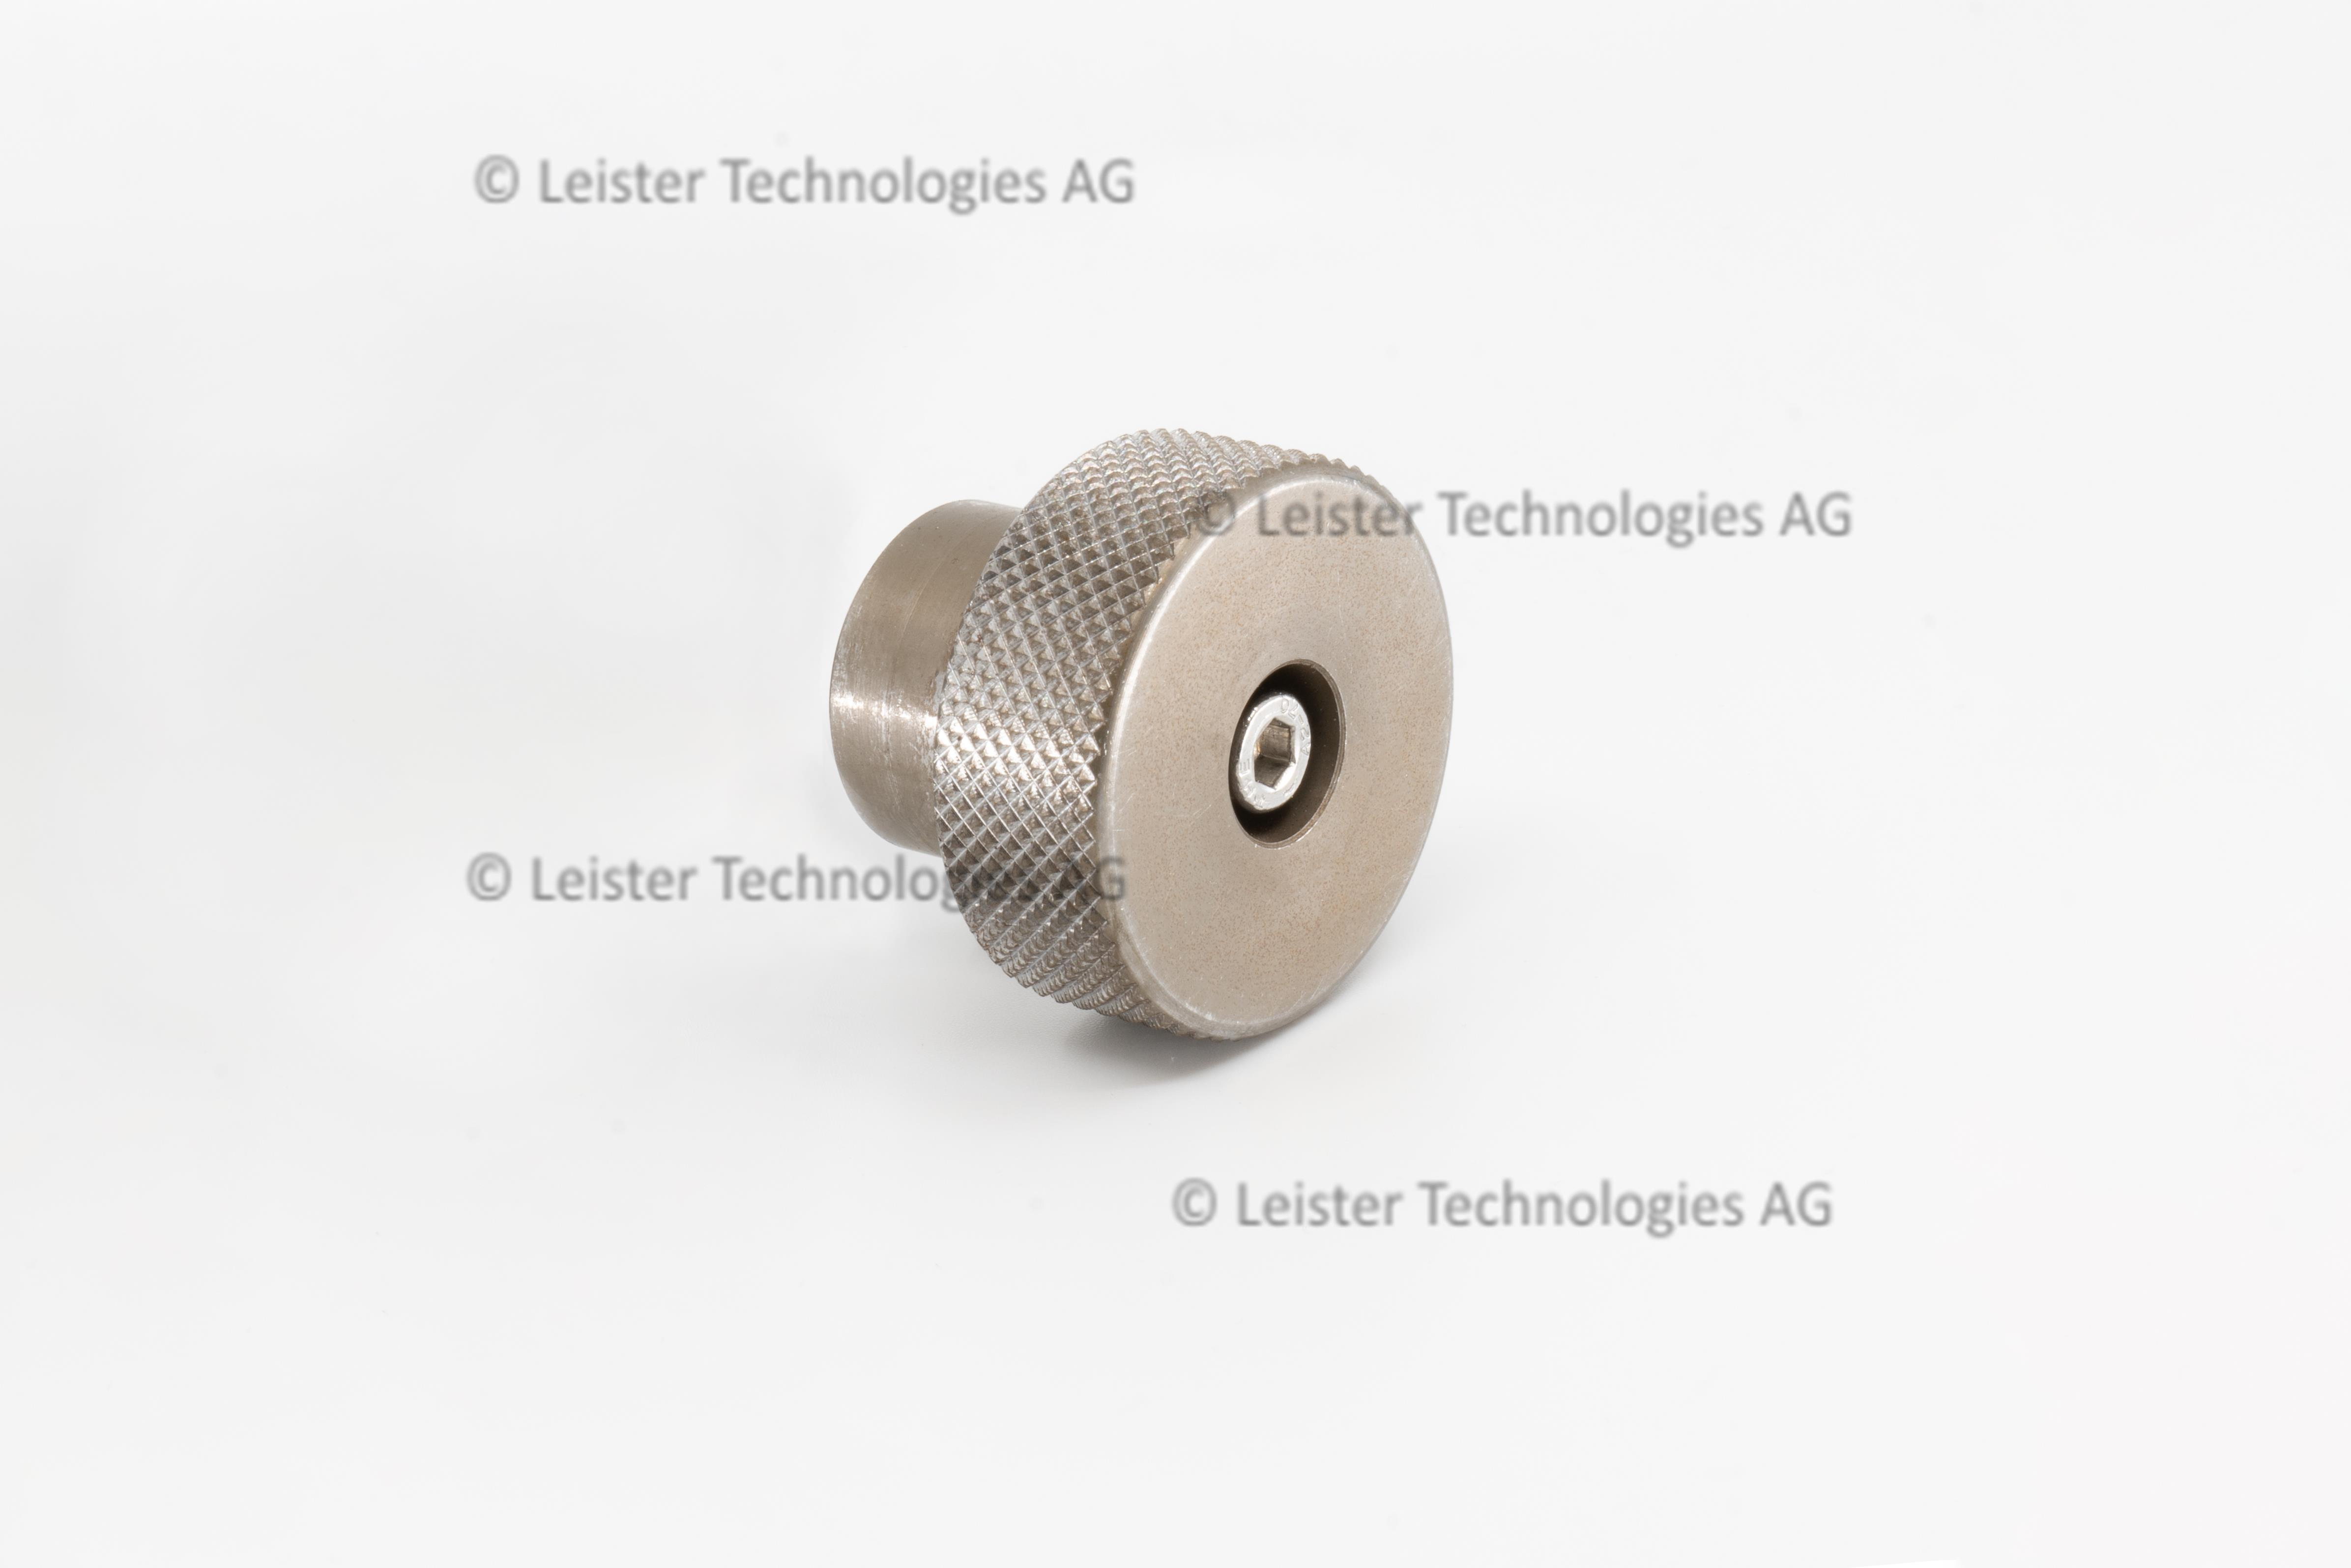 https://leister.azureedge.net/-/media/images/leister_internet/335-ltag-pw-ph-accessories/leister-accessories/andruckrolle/163_930_pressure-roller-steel_15mm.jpg?revision=a7ddd32e-1ab5-407f-a9eb-c2e1a0424b85